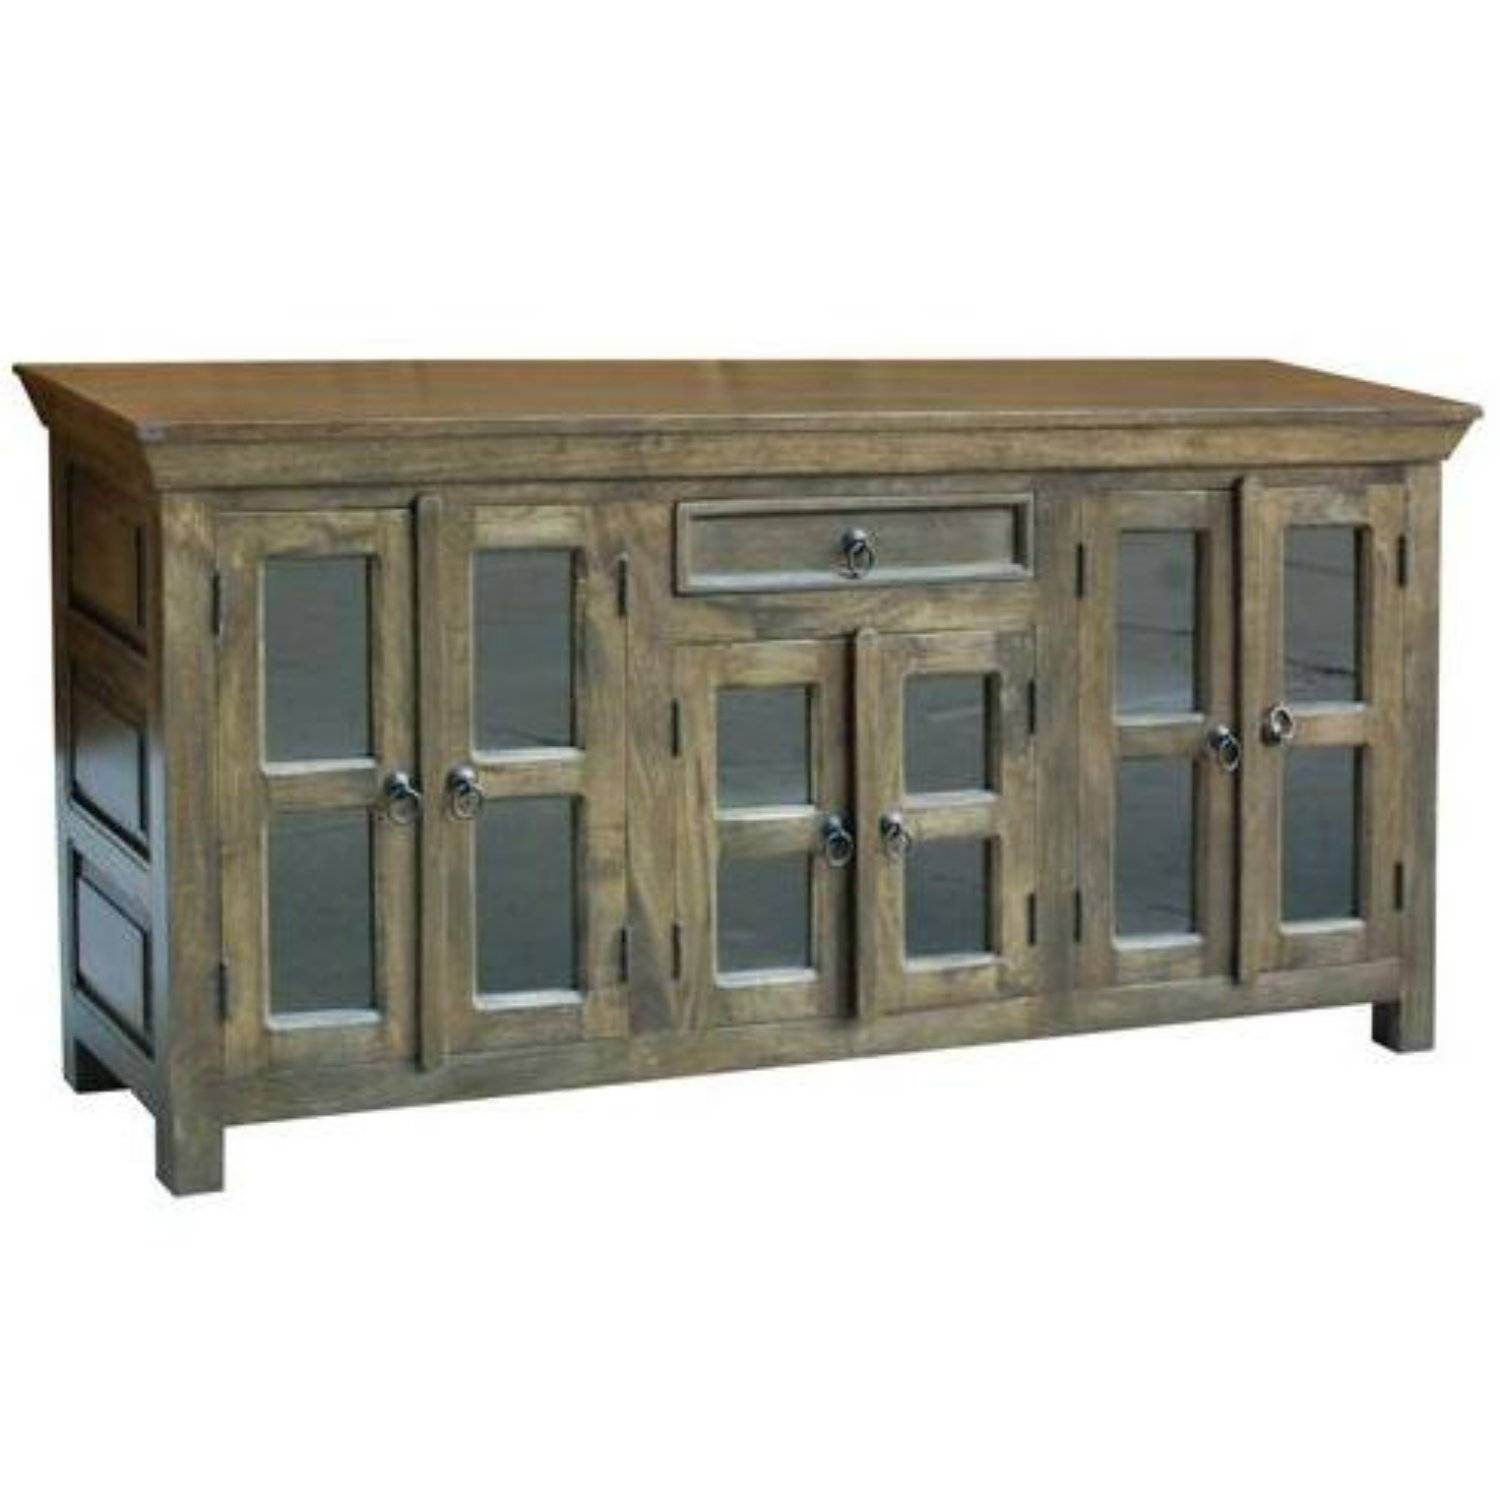 Glass Door Sideboard | Upscale Consignment in Sideboards With Glass Doors (Image 10 of 30)